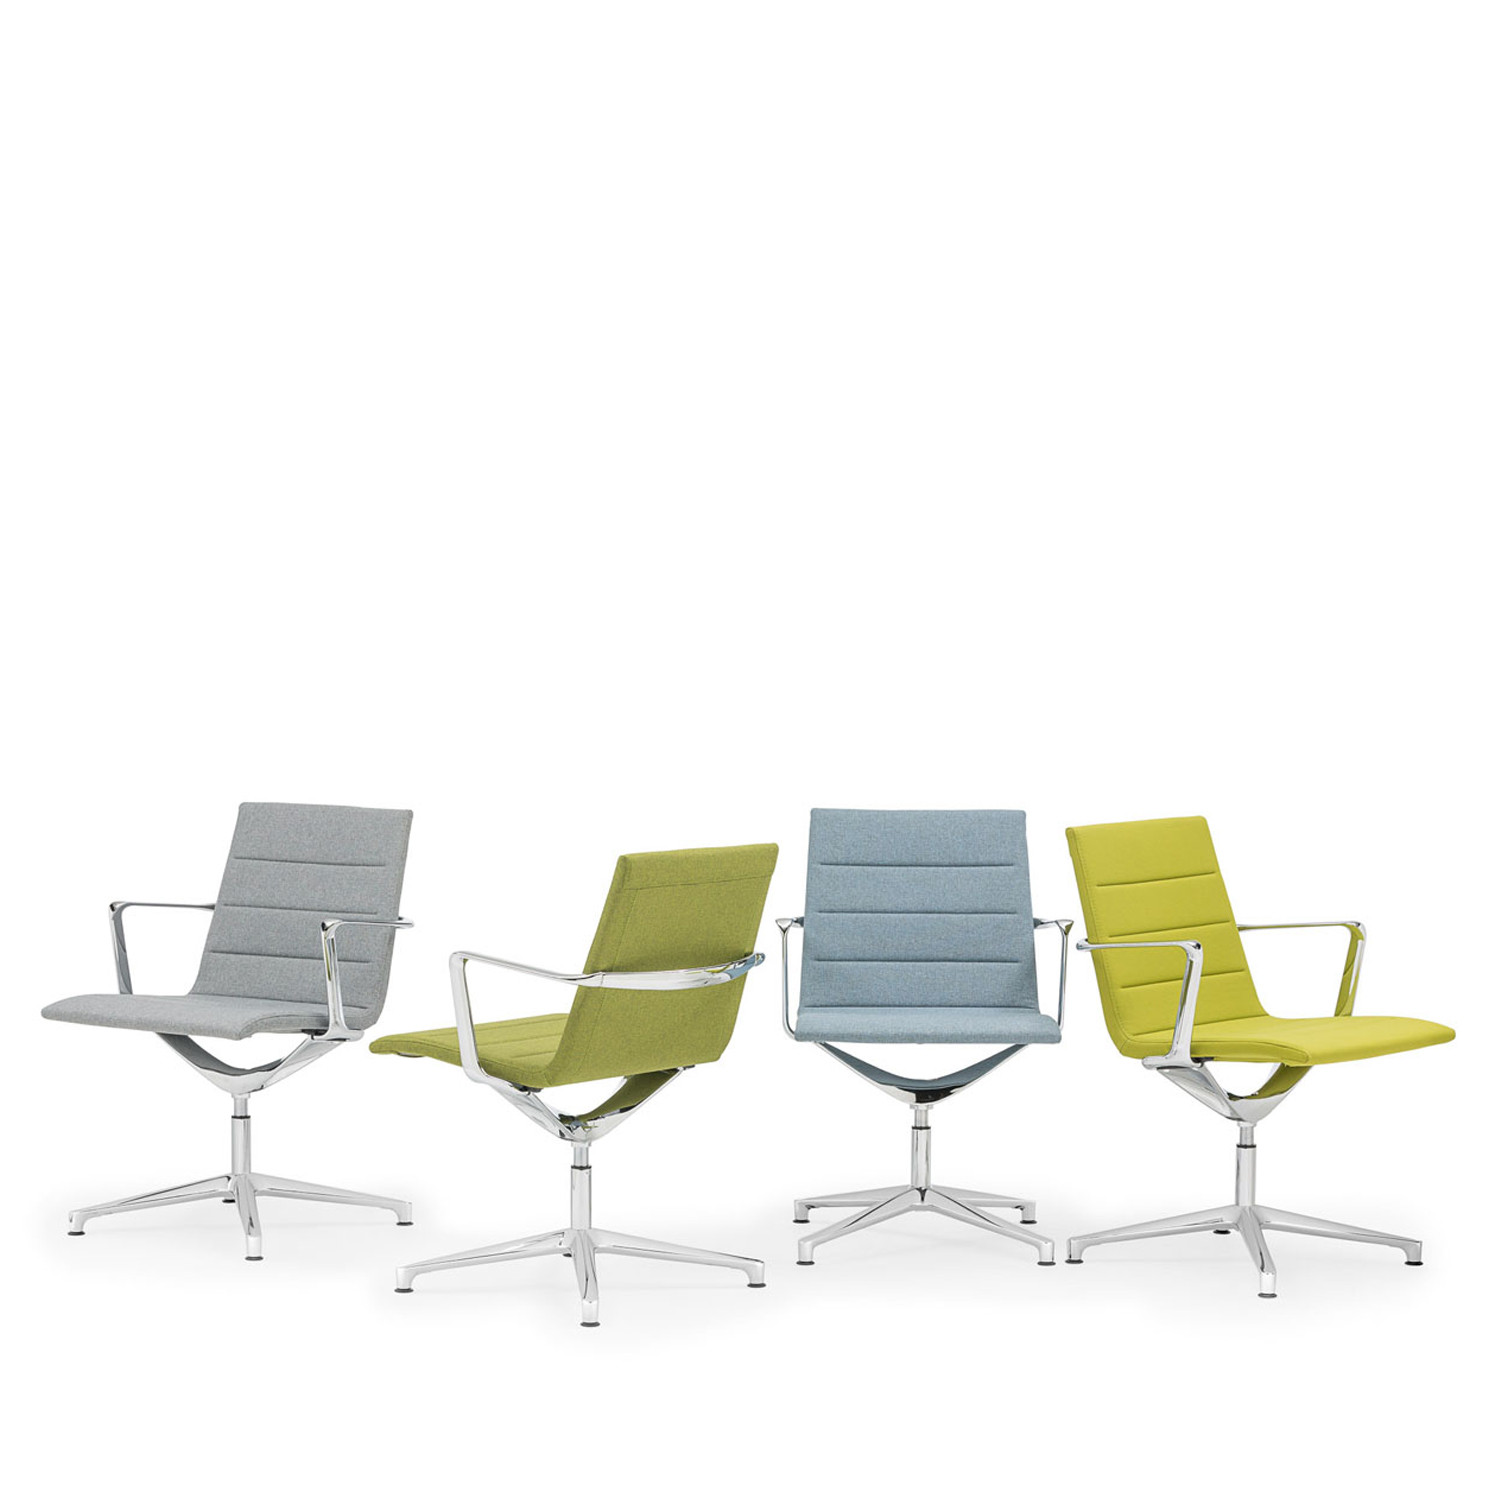 Valea Meeting Chairs